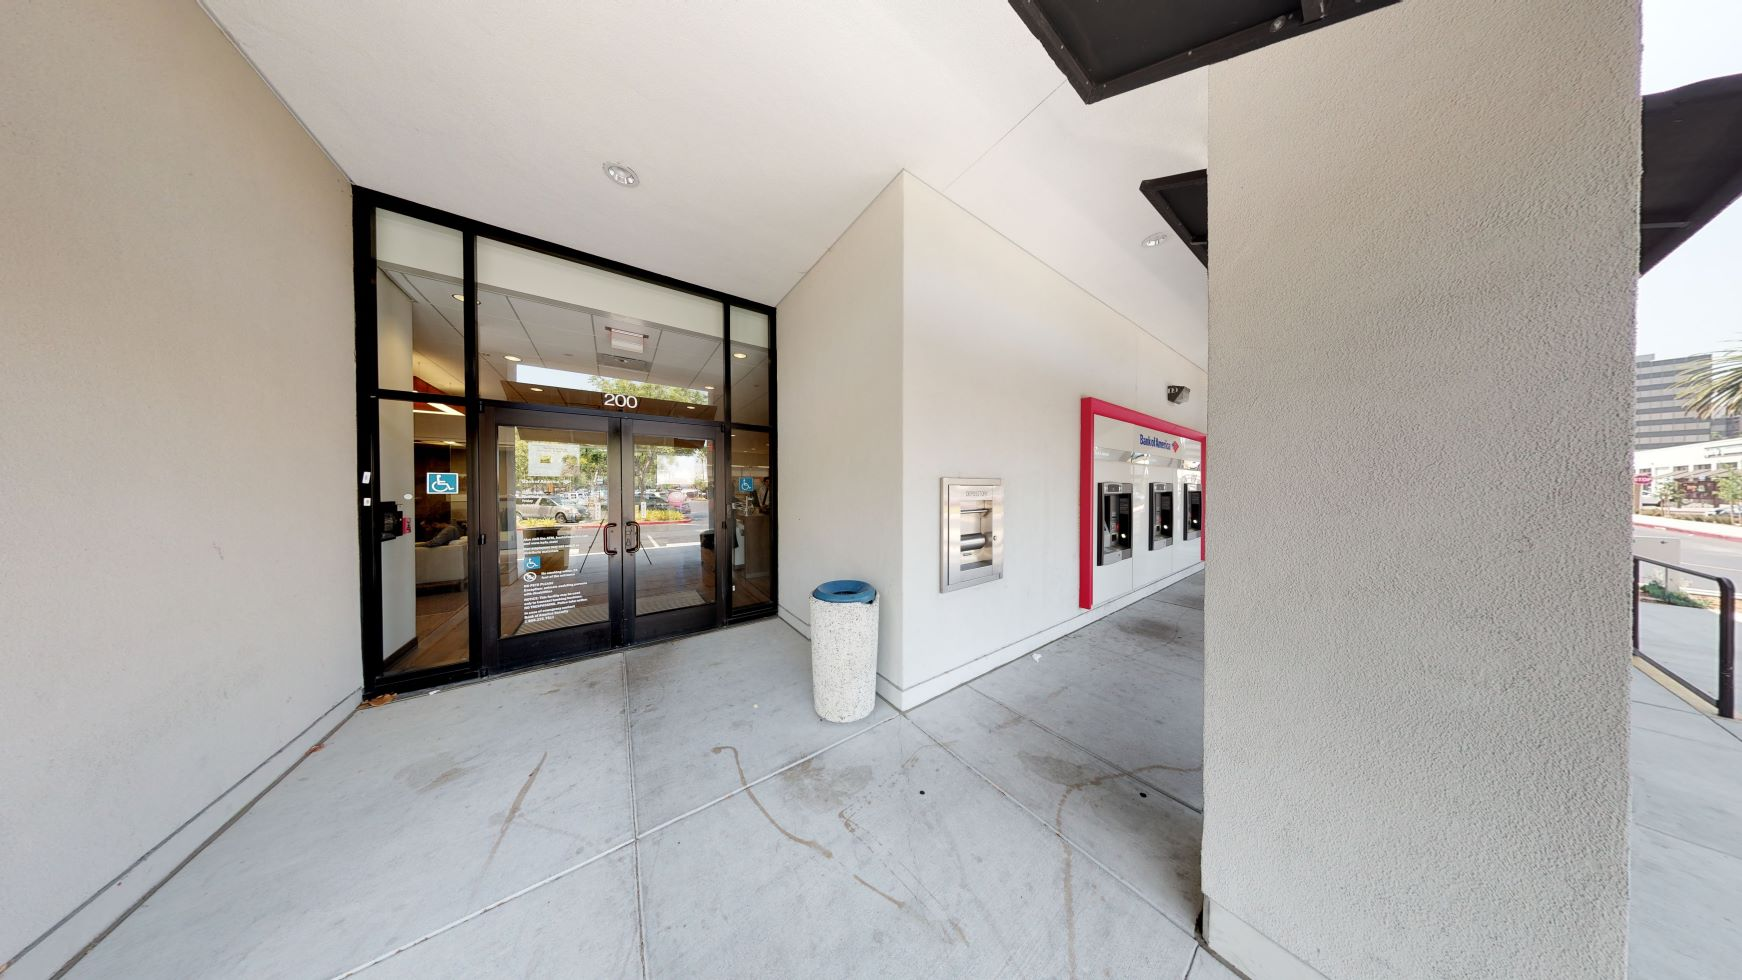 Bank of America financial center with drive-thru ATM | 1875 S Bascom Ave, Campbell, CA 95008